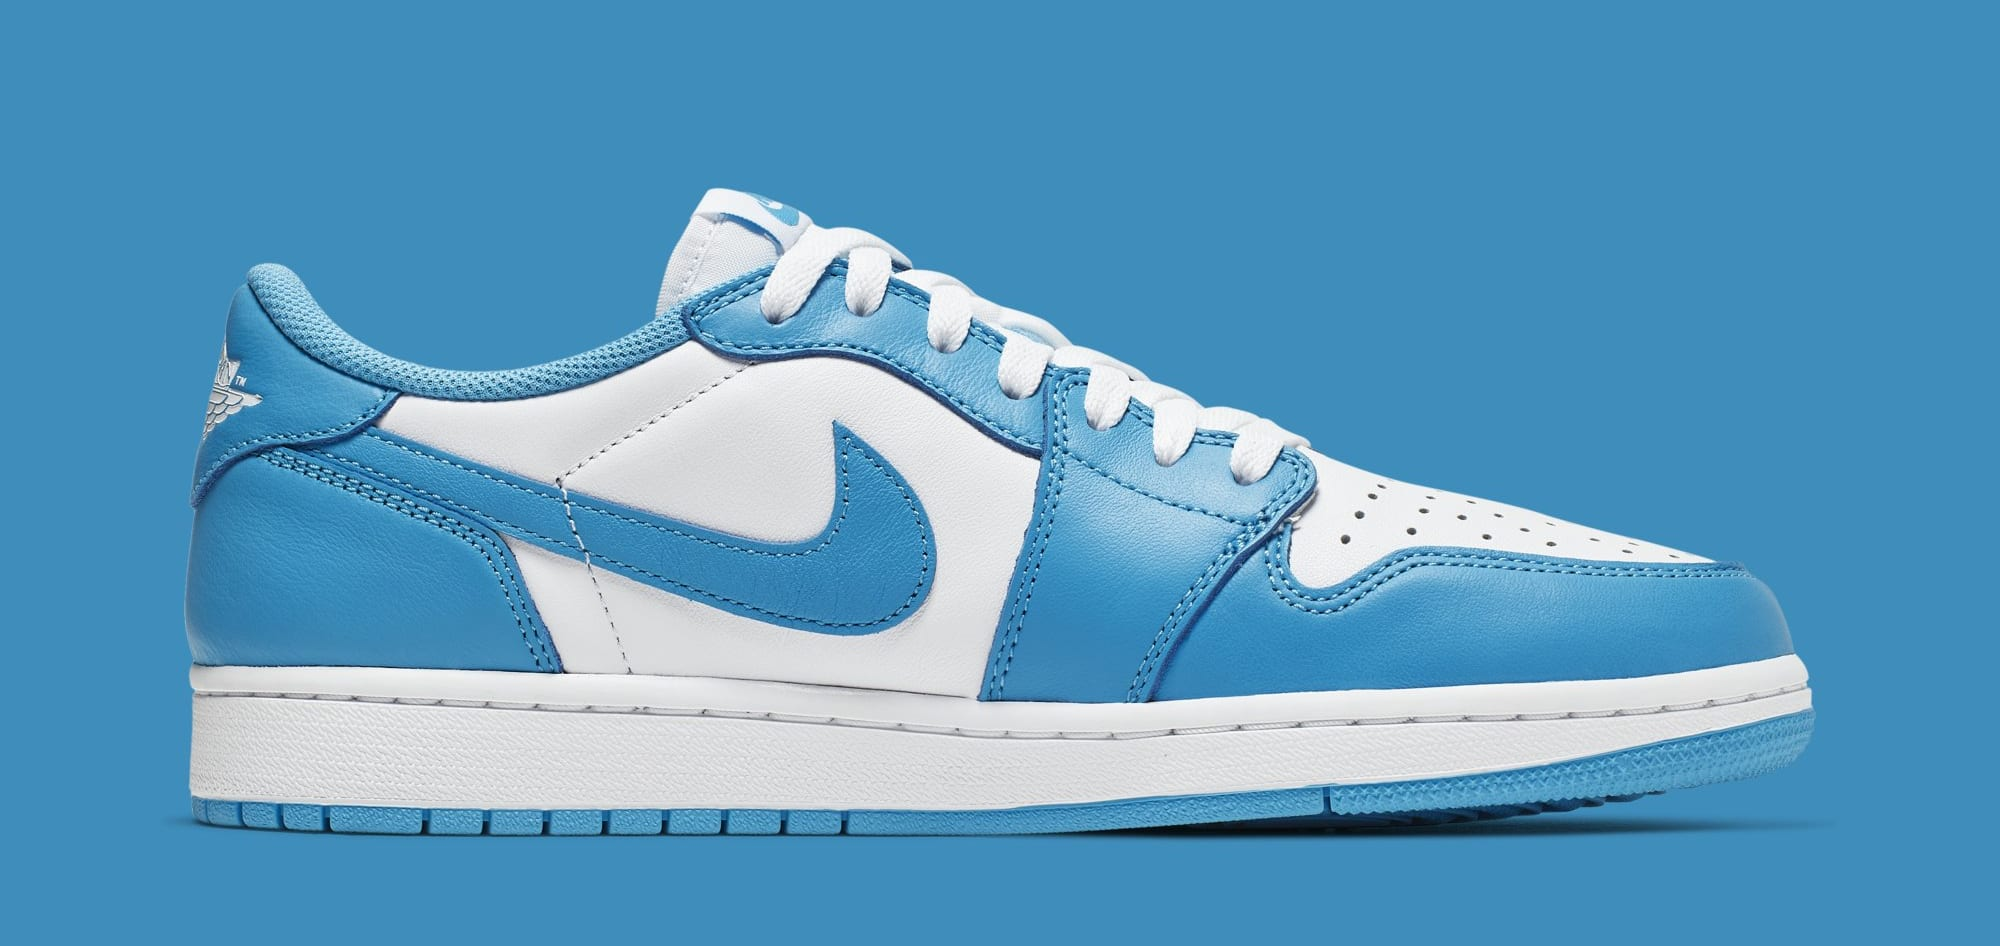 Eric Koston X Nike Sb X Air Jordan 1 Low X Carolina Blue Release